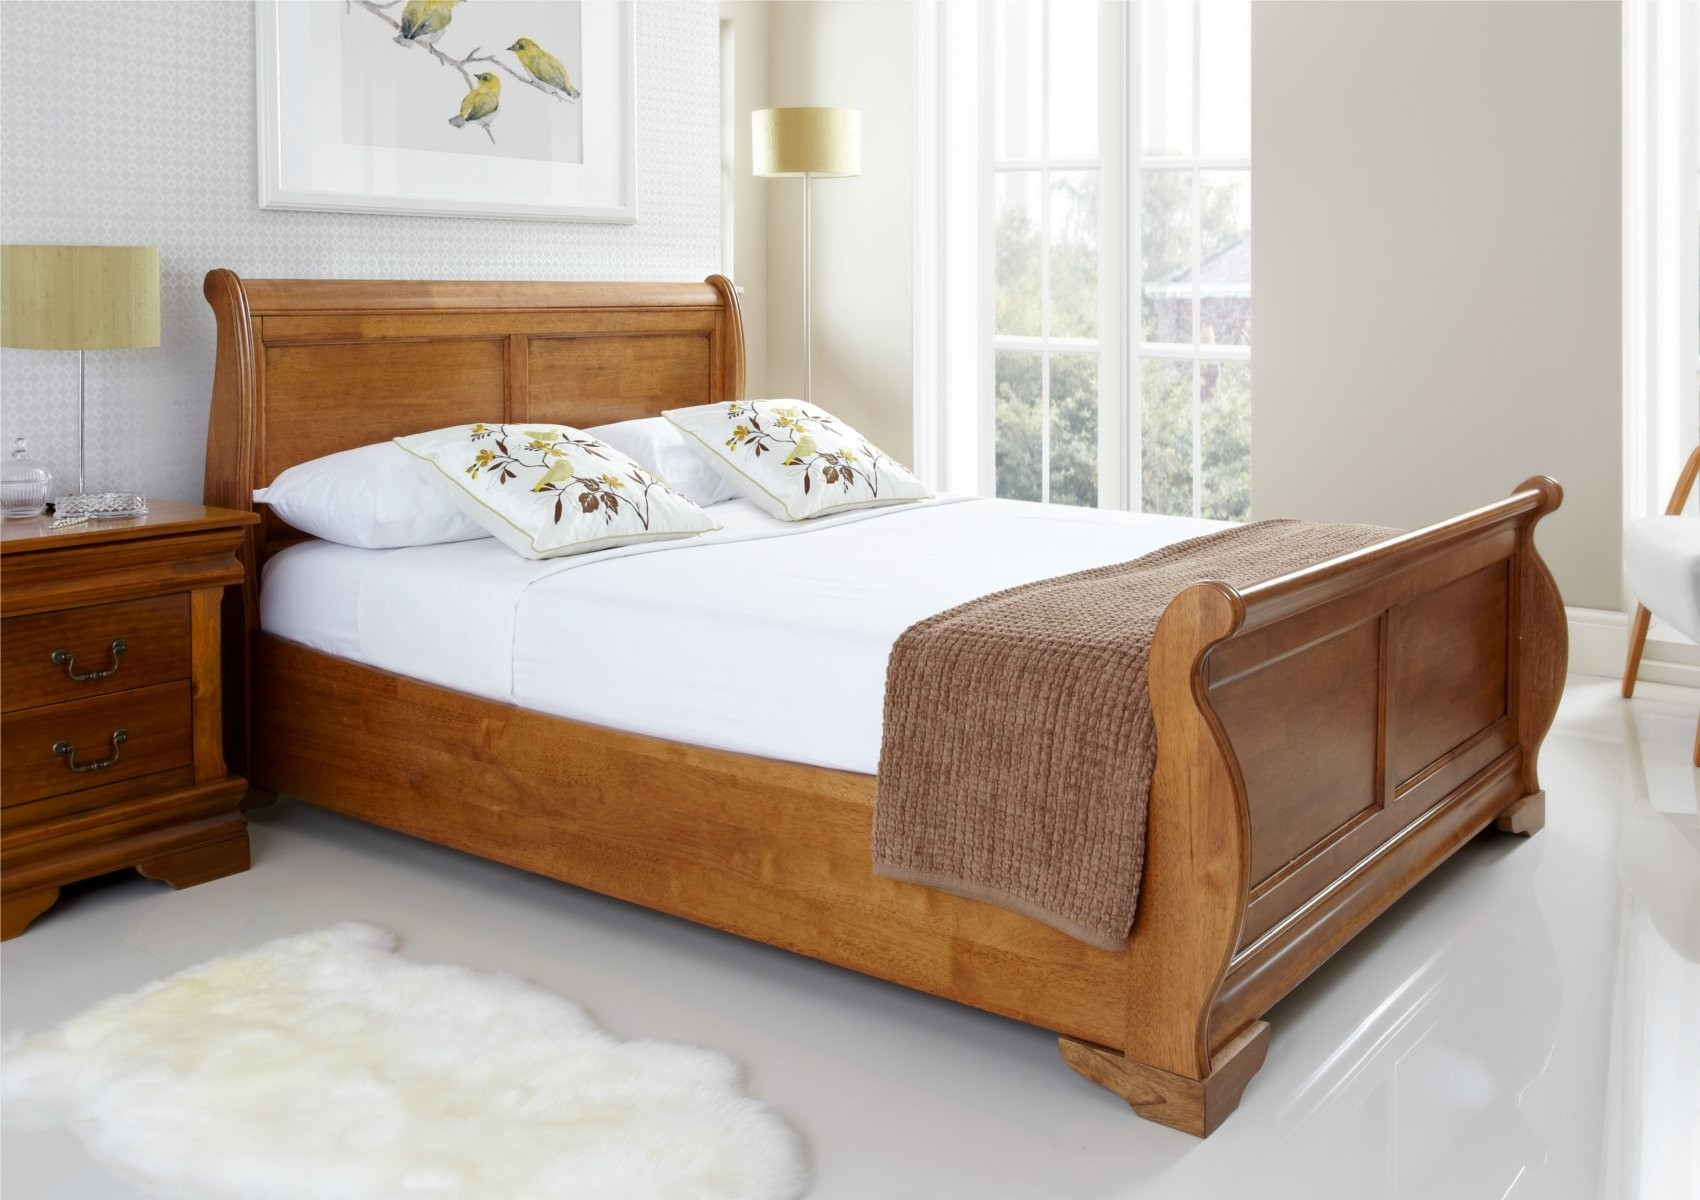 Oak King Size Sleigh Bed Frame